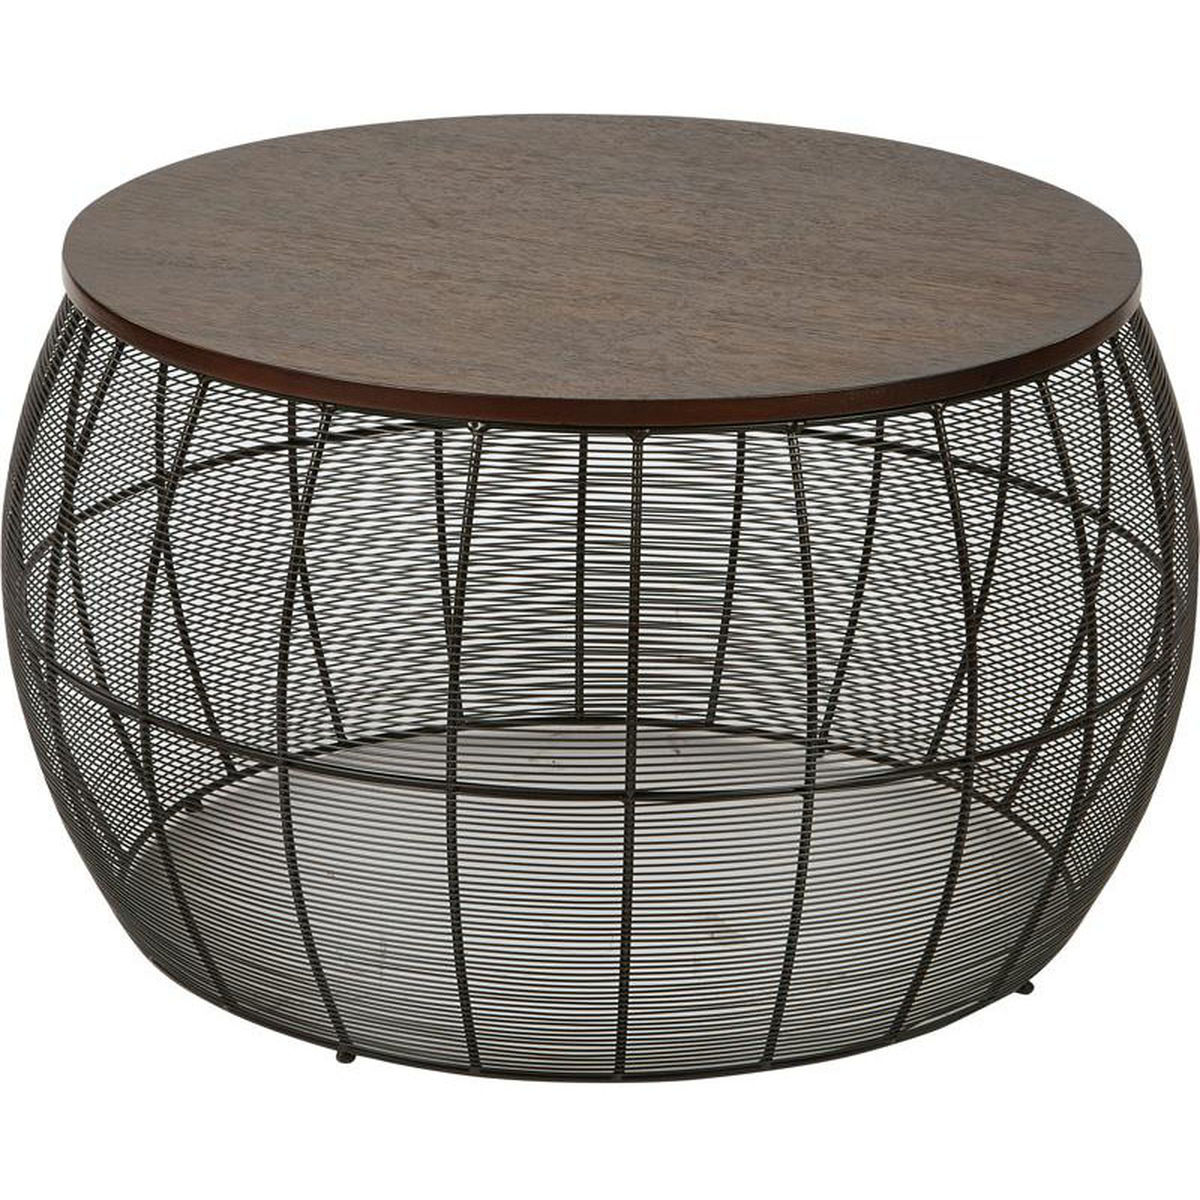 camden piece round accent tables bizchair office star products espresso table our osp designs metal with wood top garden furniture umbrella butler specialty company wicker trunk